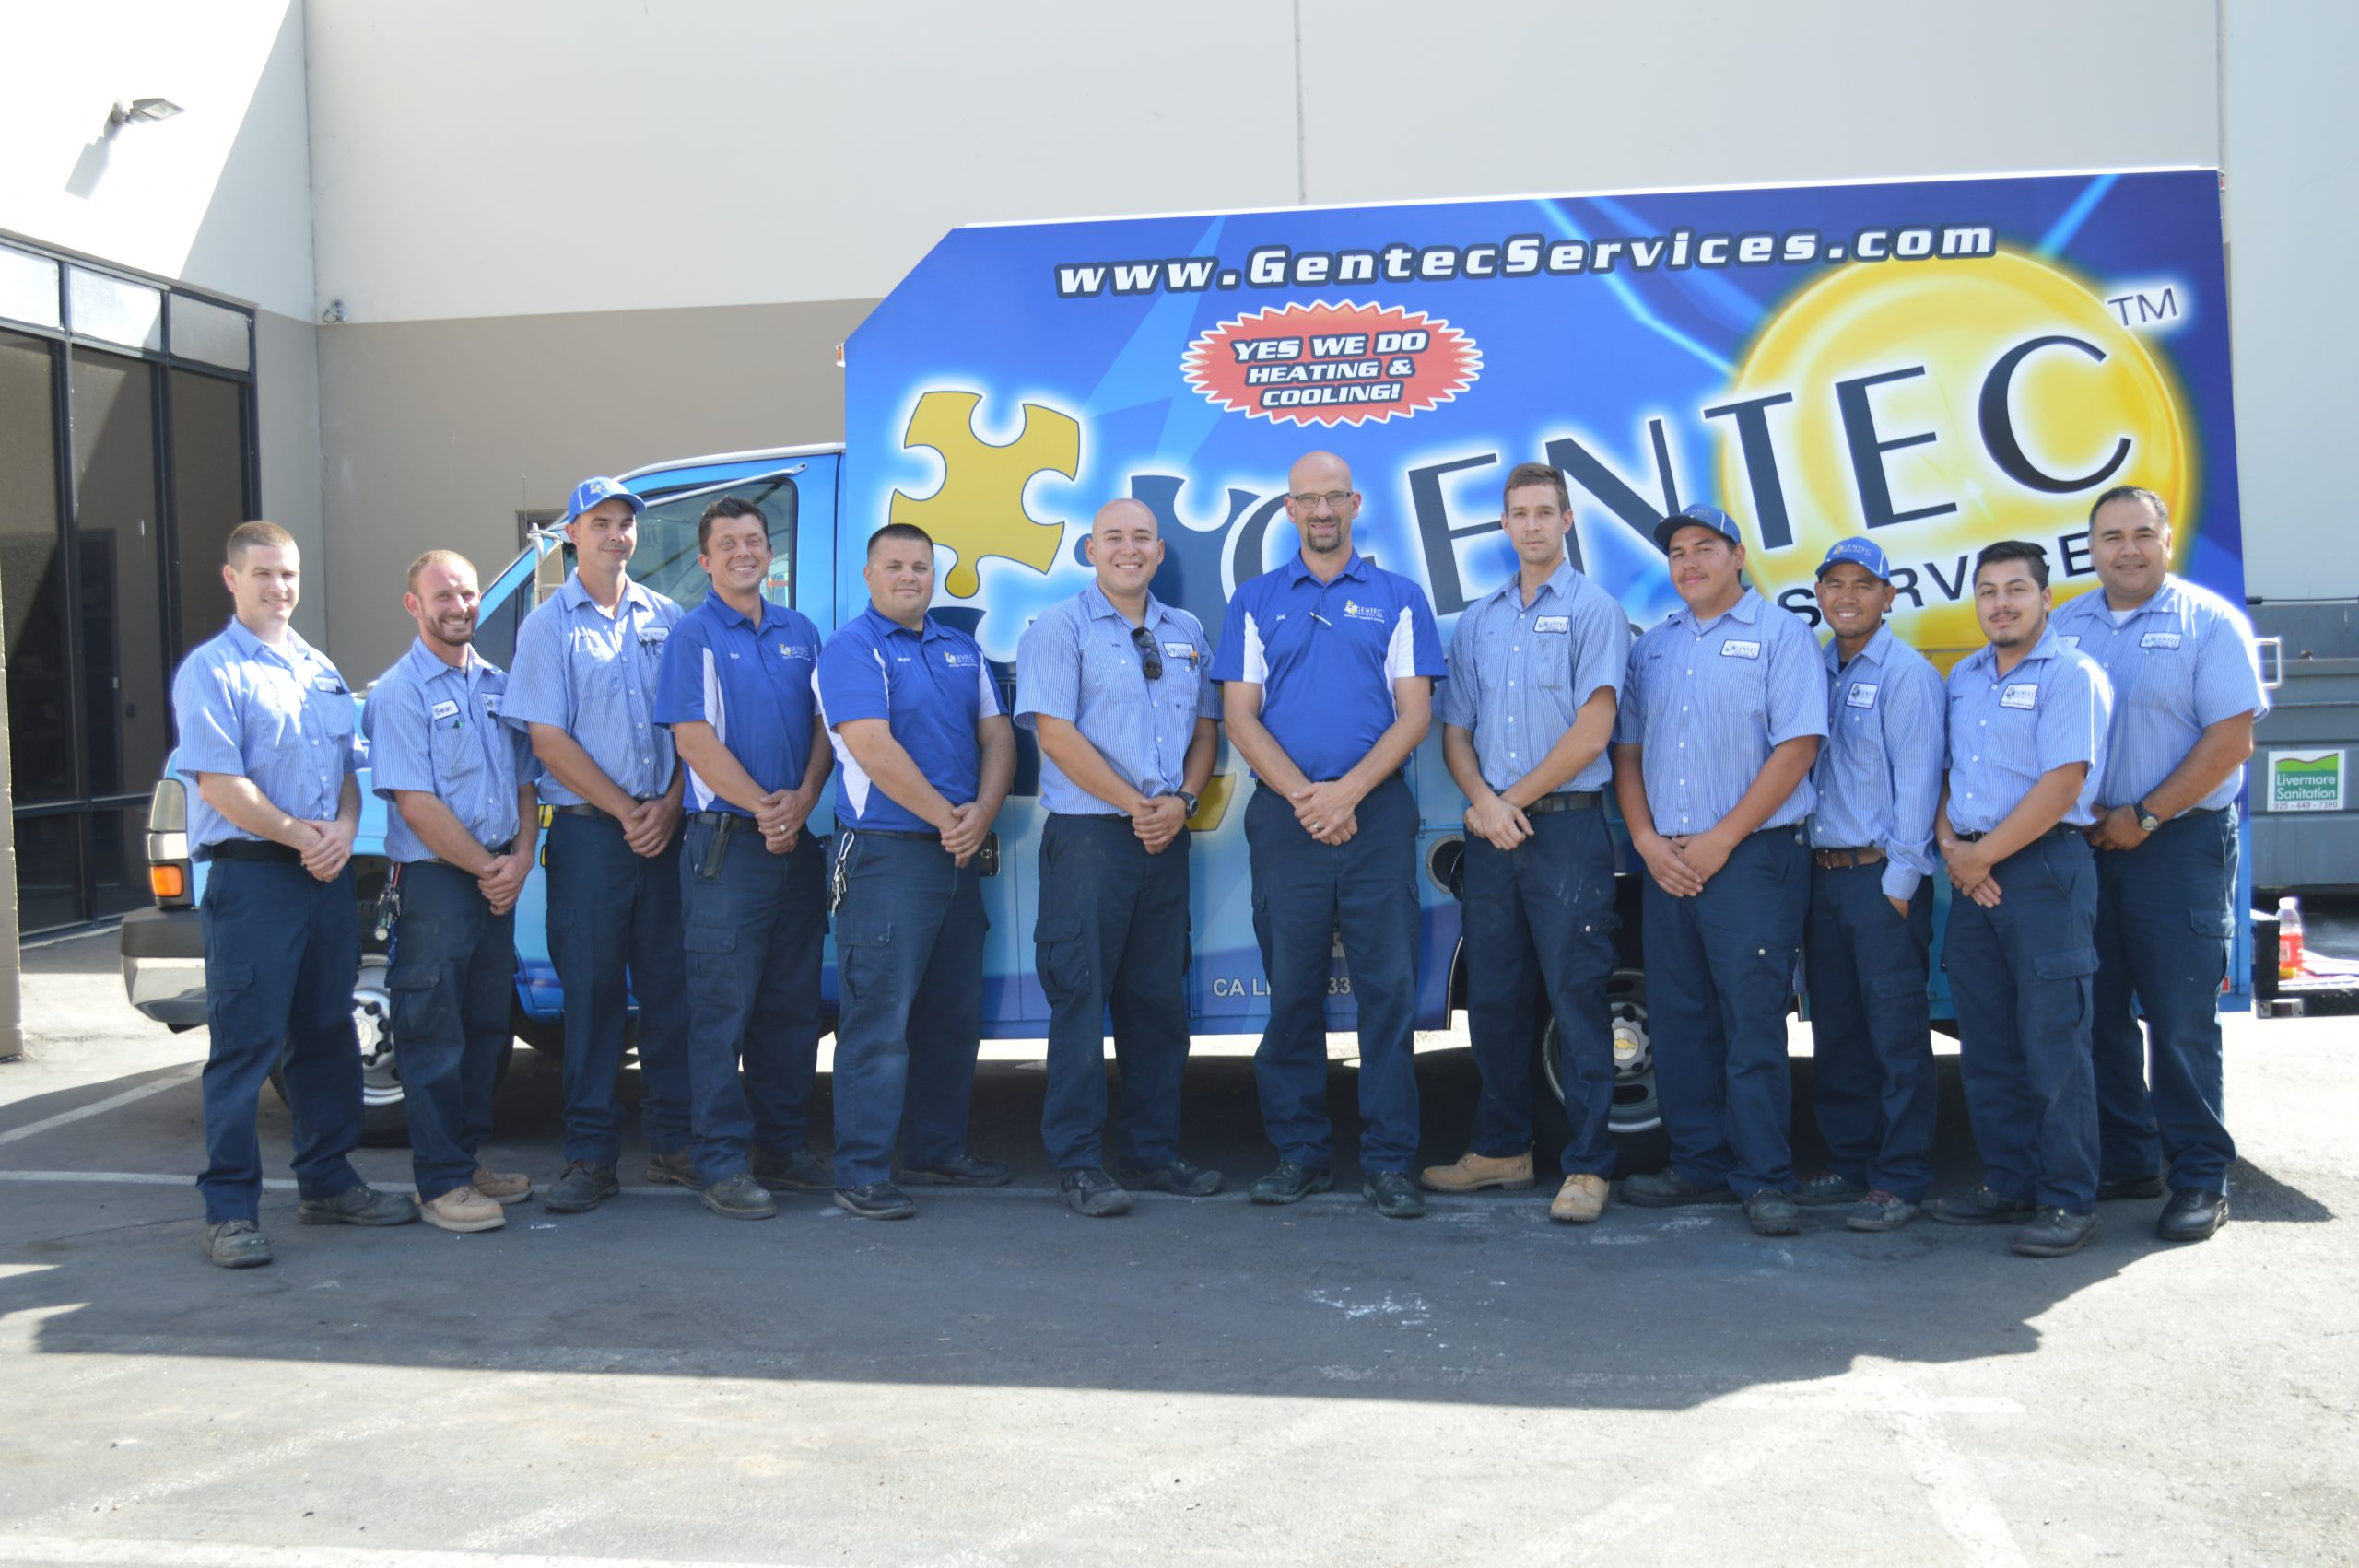 Gentec Services - Walnut Creek Electricians